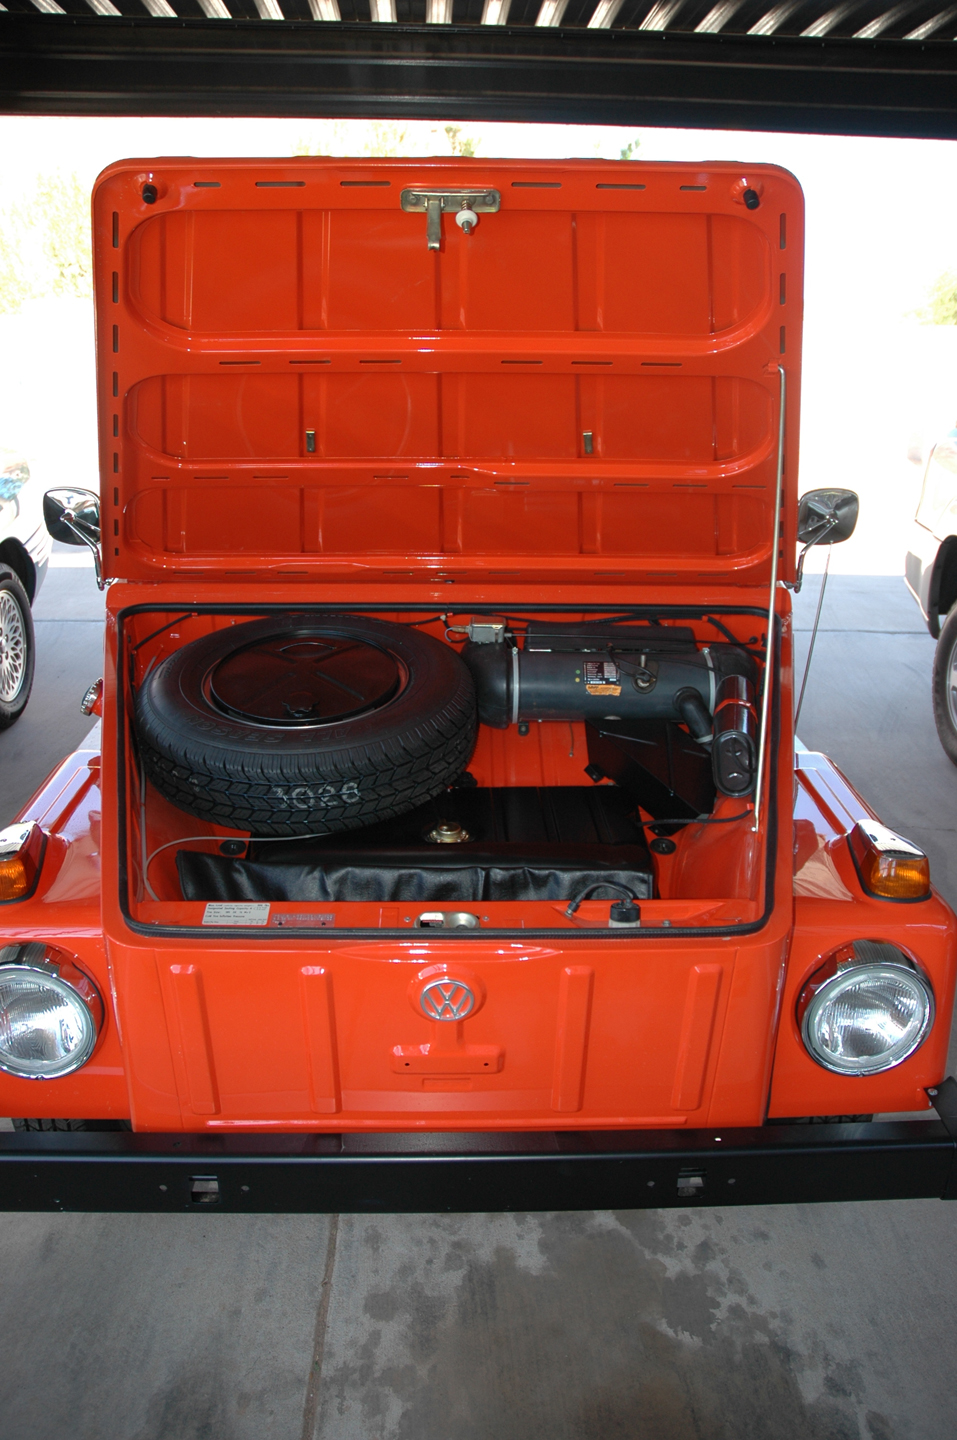 1973 VOLKSWAGEN THING CONVERTIBLE - Misc 2 - 45291